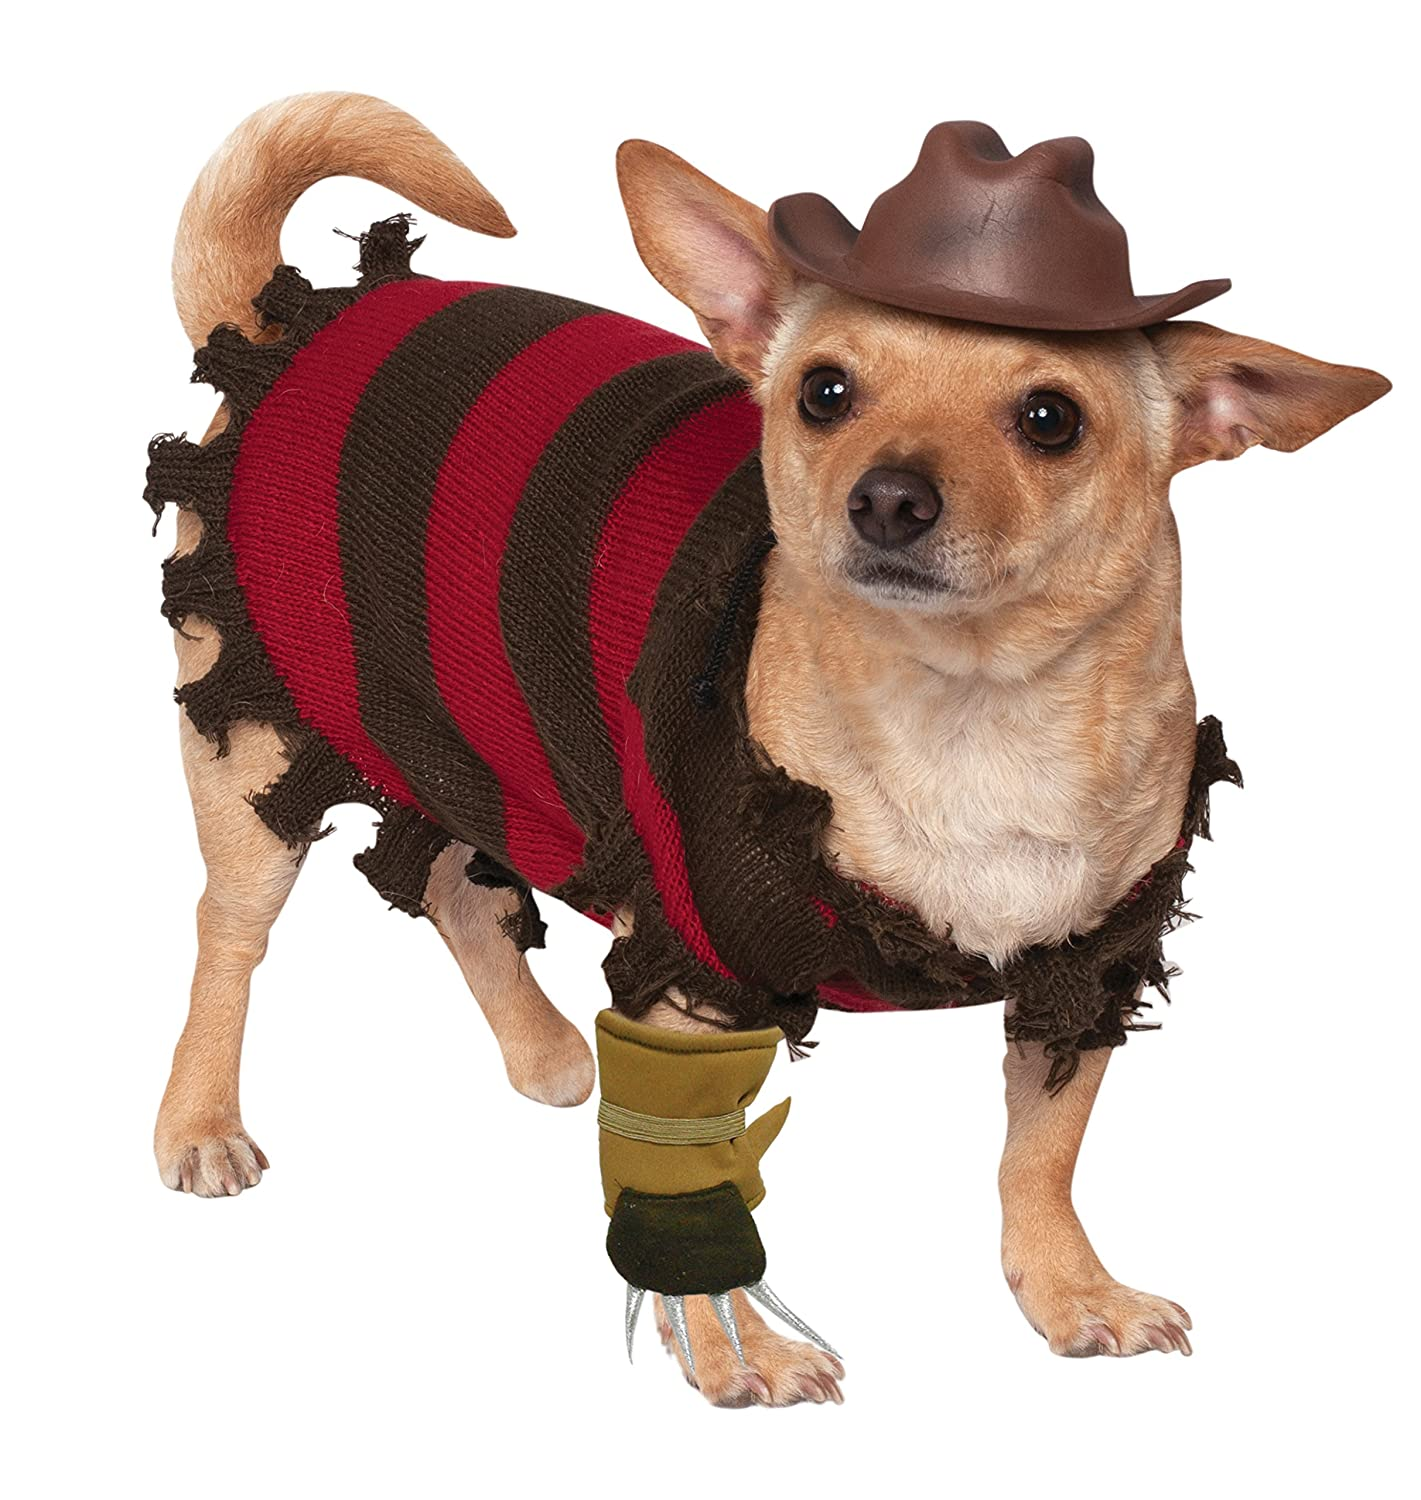 Amazon.com Rubies Costume Company A Nightmare on Elm Street Freddy Krueger Pet Costume X-Large Pet Supplies  sc 1 st  Amazon.com & Amazon.com: Rubies Costume Company A Nightmare on Elm Street Freddy ...